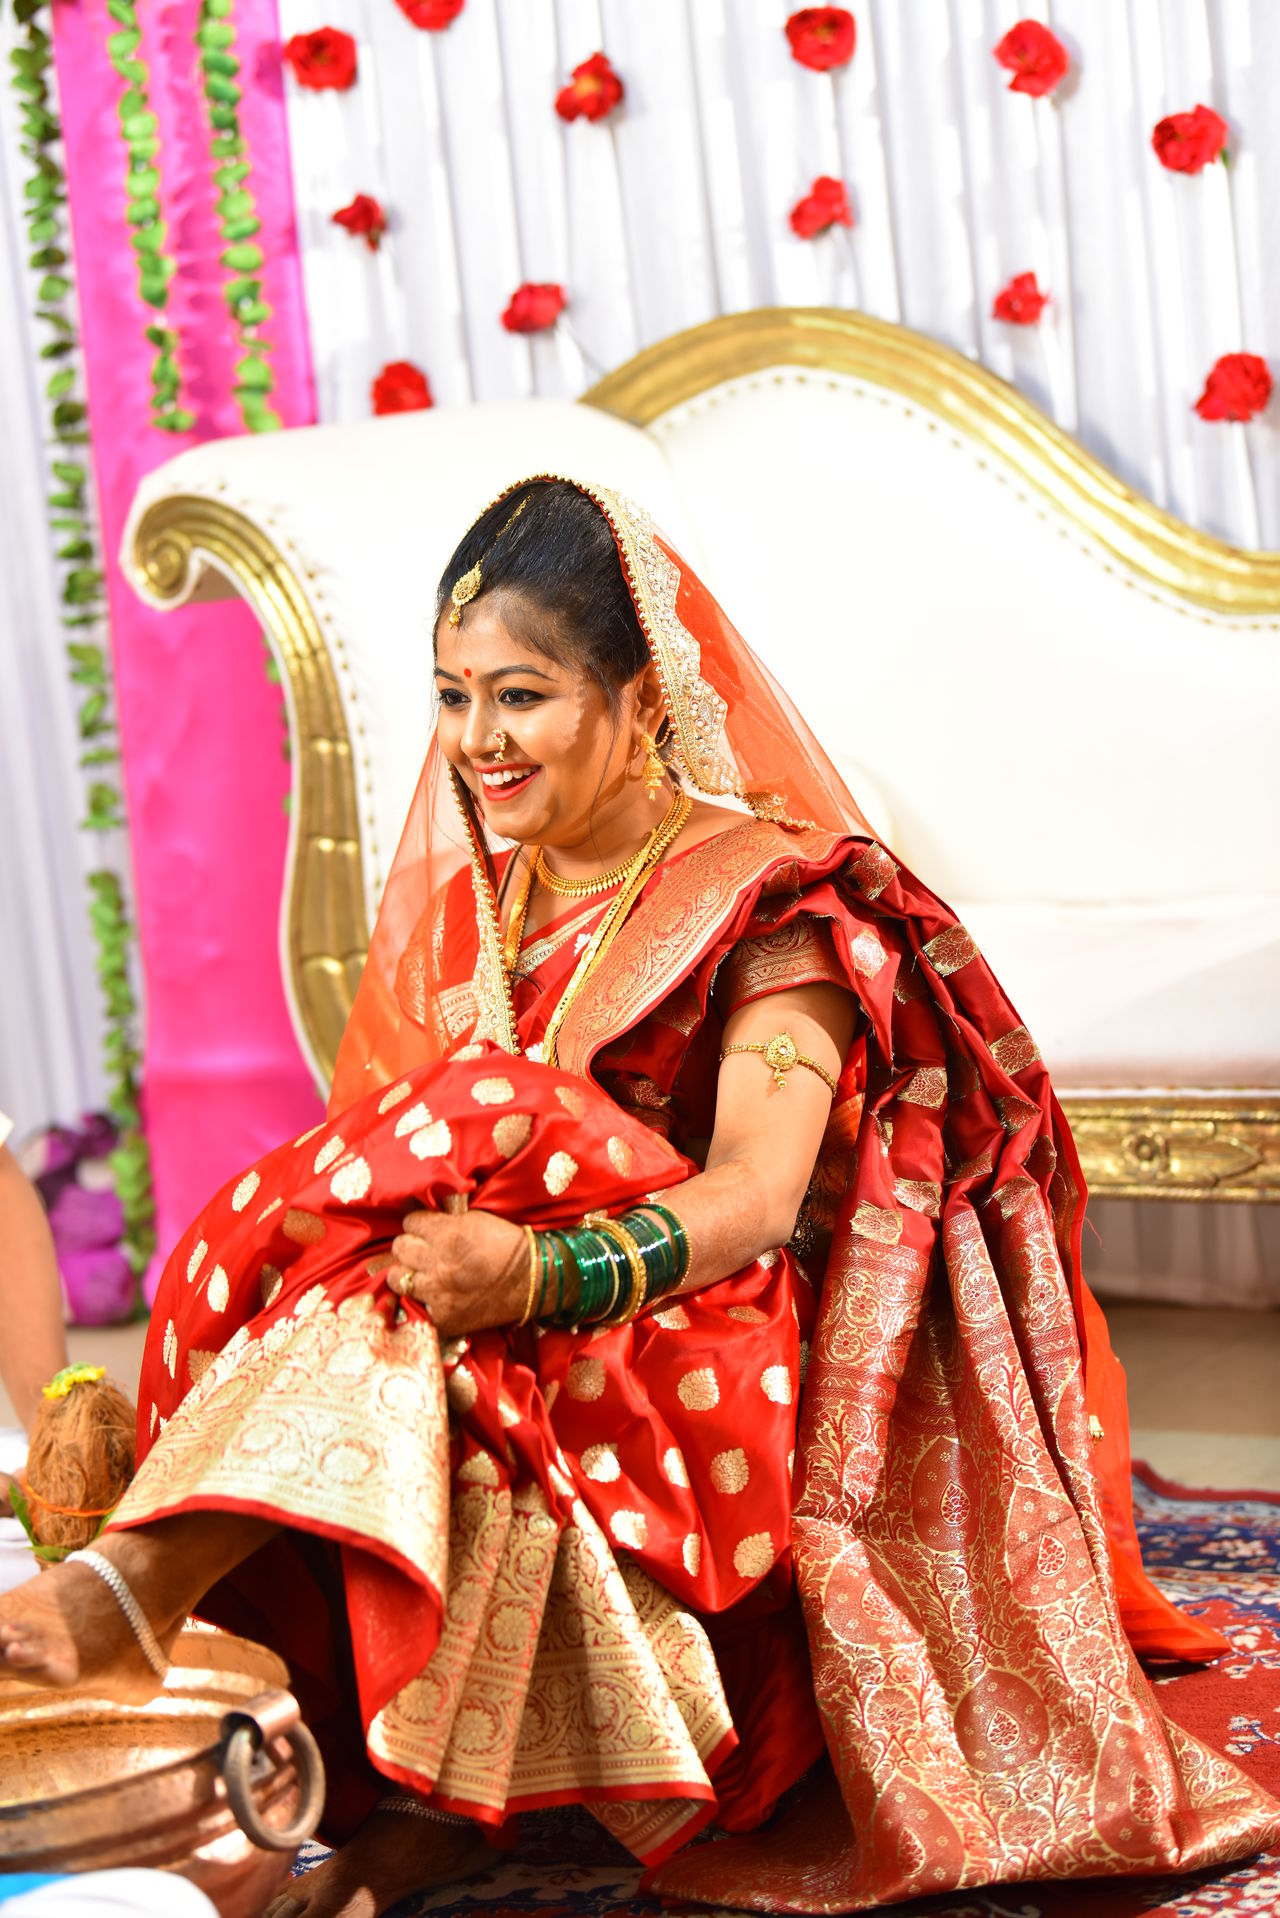 Bride in ceremony Bride Bride Dress Bride Look EyeEm Selects Traditional Clothing One Woman Only Only Women One Person Adult Adults Only Sari Beautiful Woman Smiling Beauty Beautiful People Women Females One Young Woman Only Sitting Cheerful Cultures Happiness People Young Adult